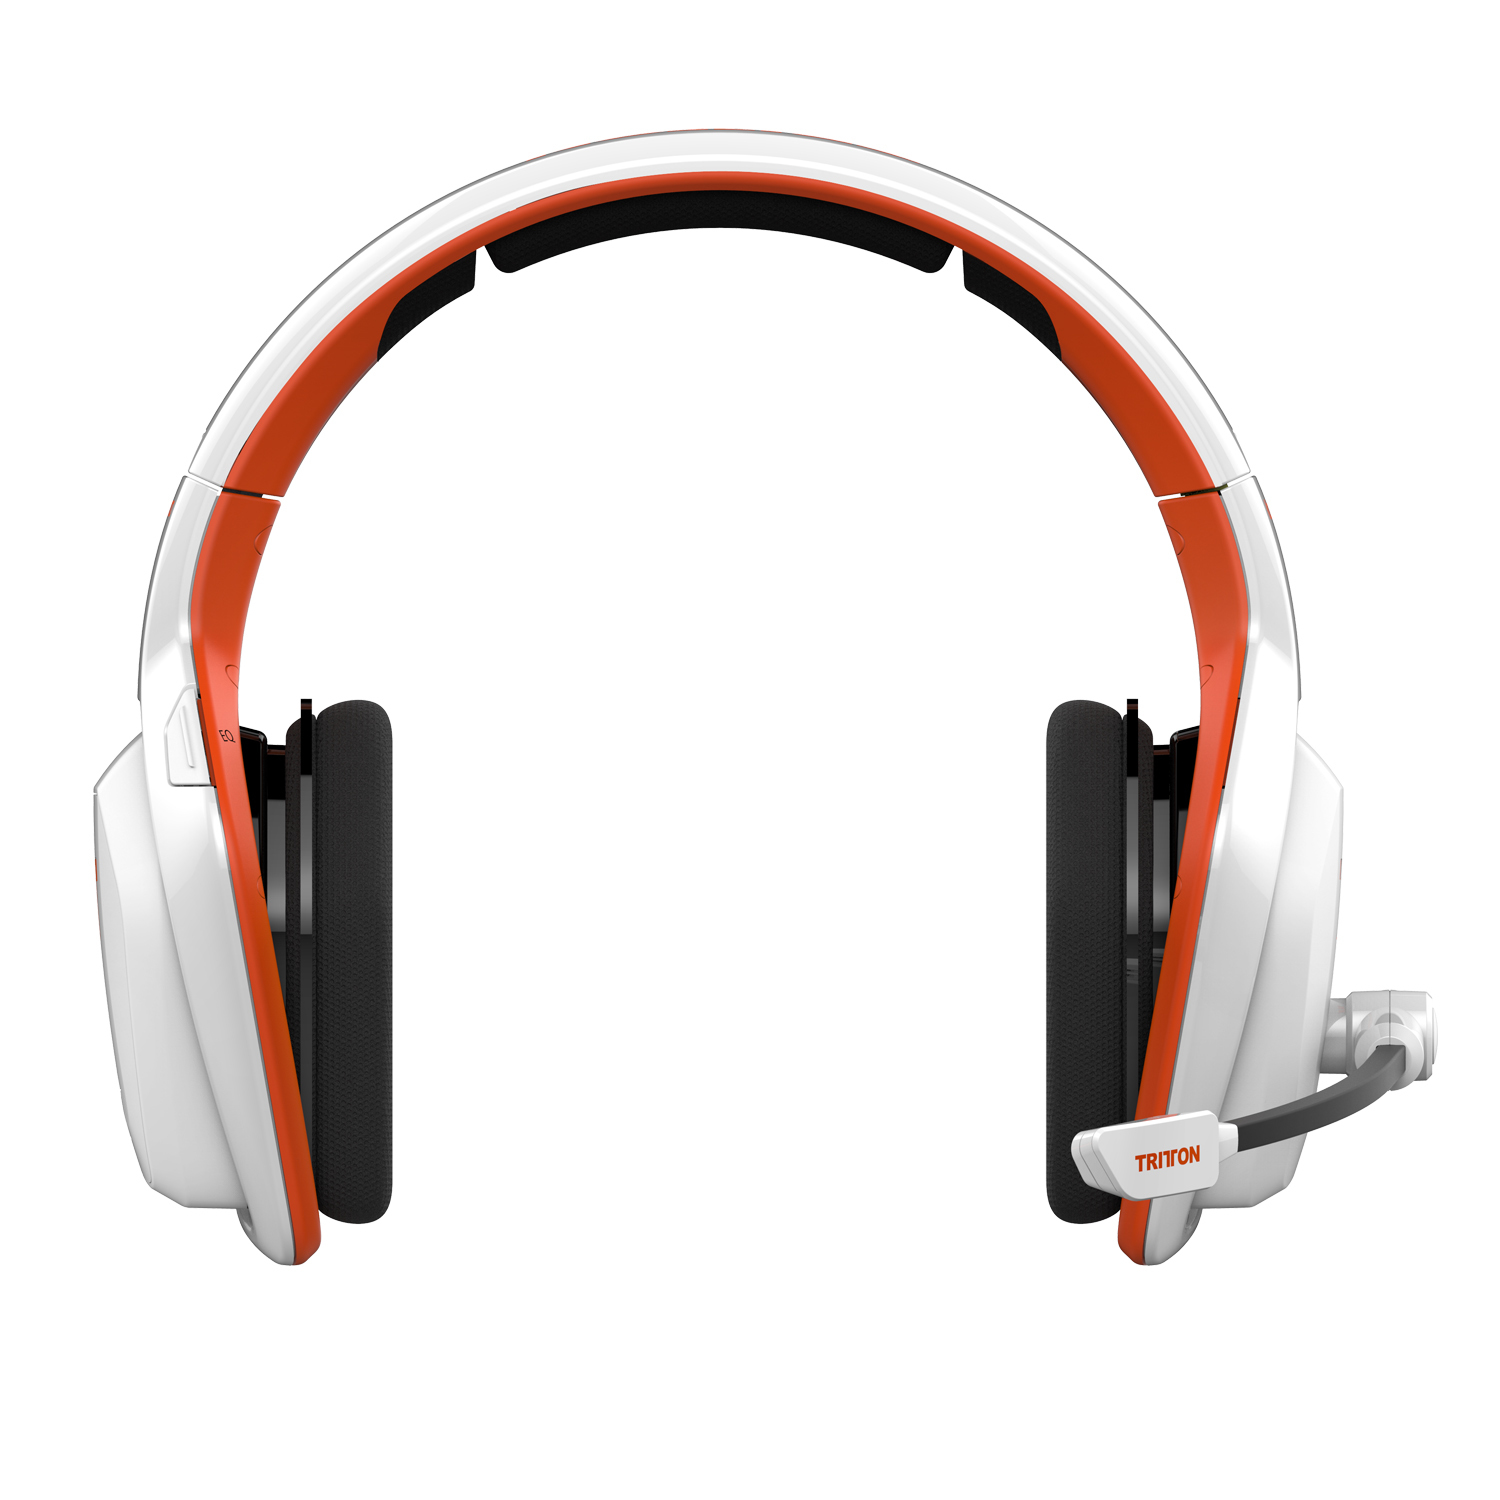 tritton katana universal 7 1 hd wireless headset white ps4 buy now at mighty ape nz. Black Bedroom Furniture Sets. Home Design Ideas